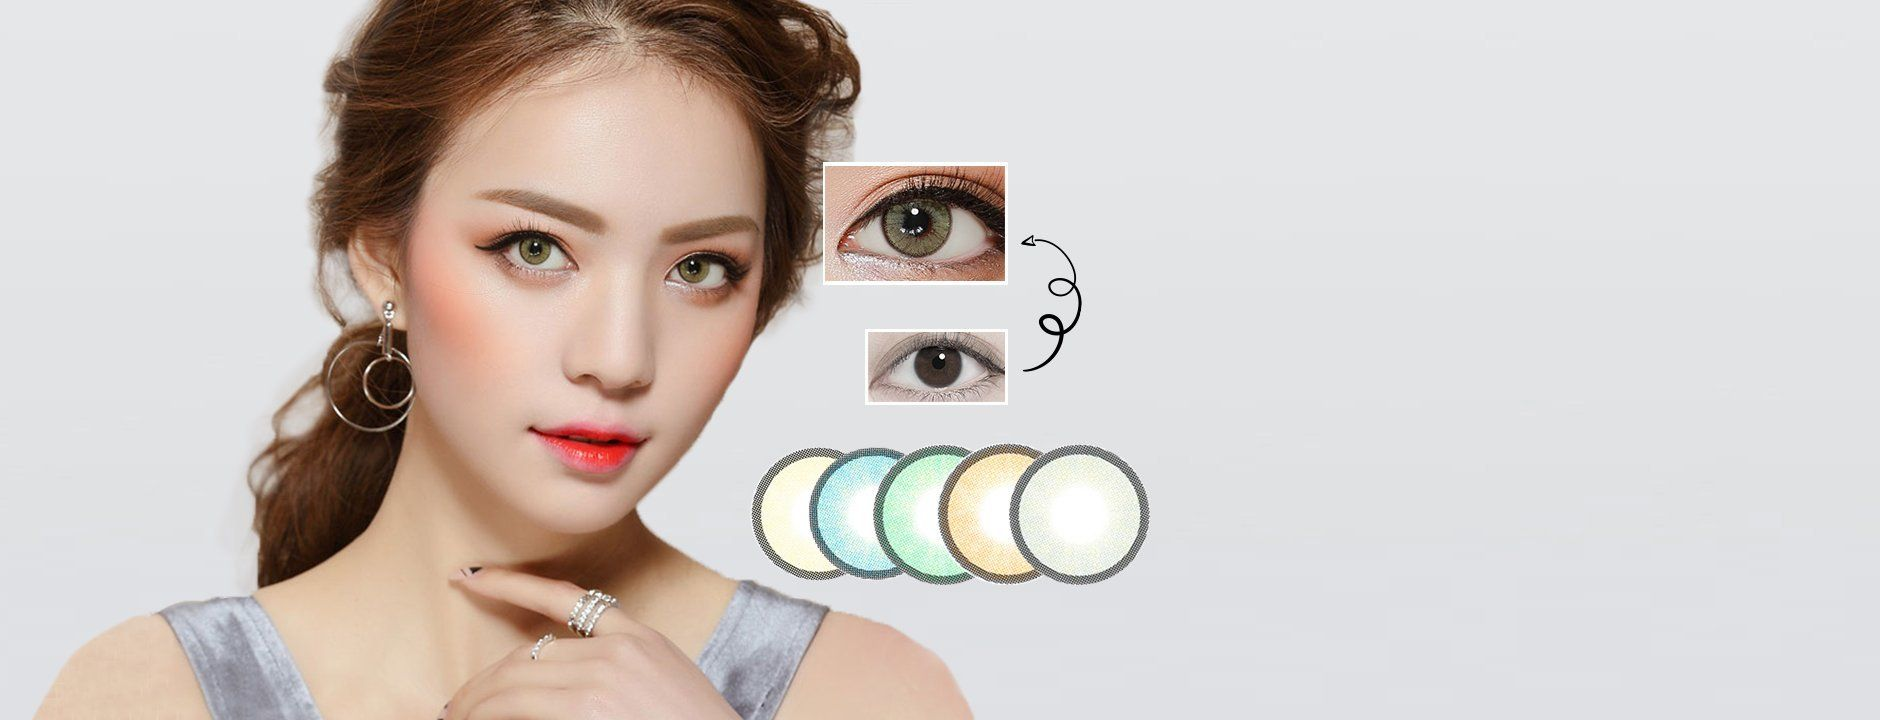 Best Coloured Contacts | Circle Lenses | Color Contacts | EyeCandys #coloredeyecontacts